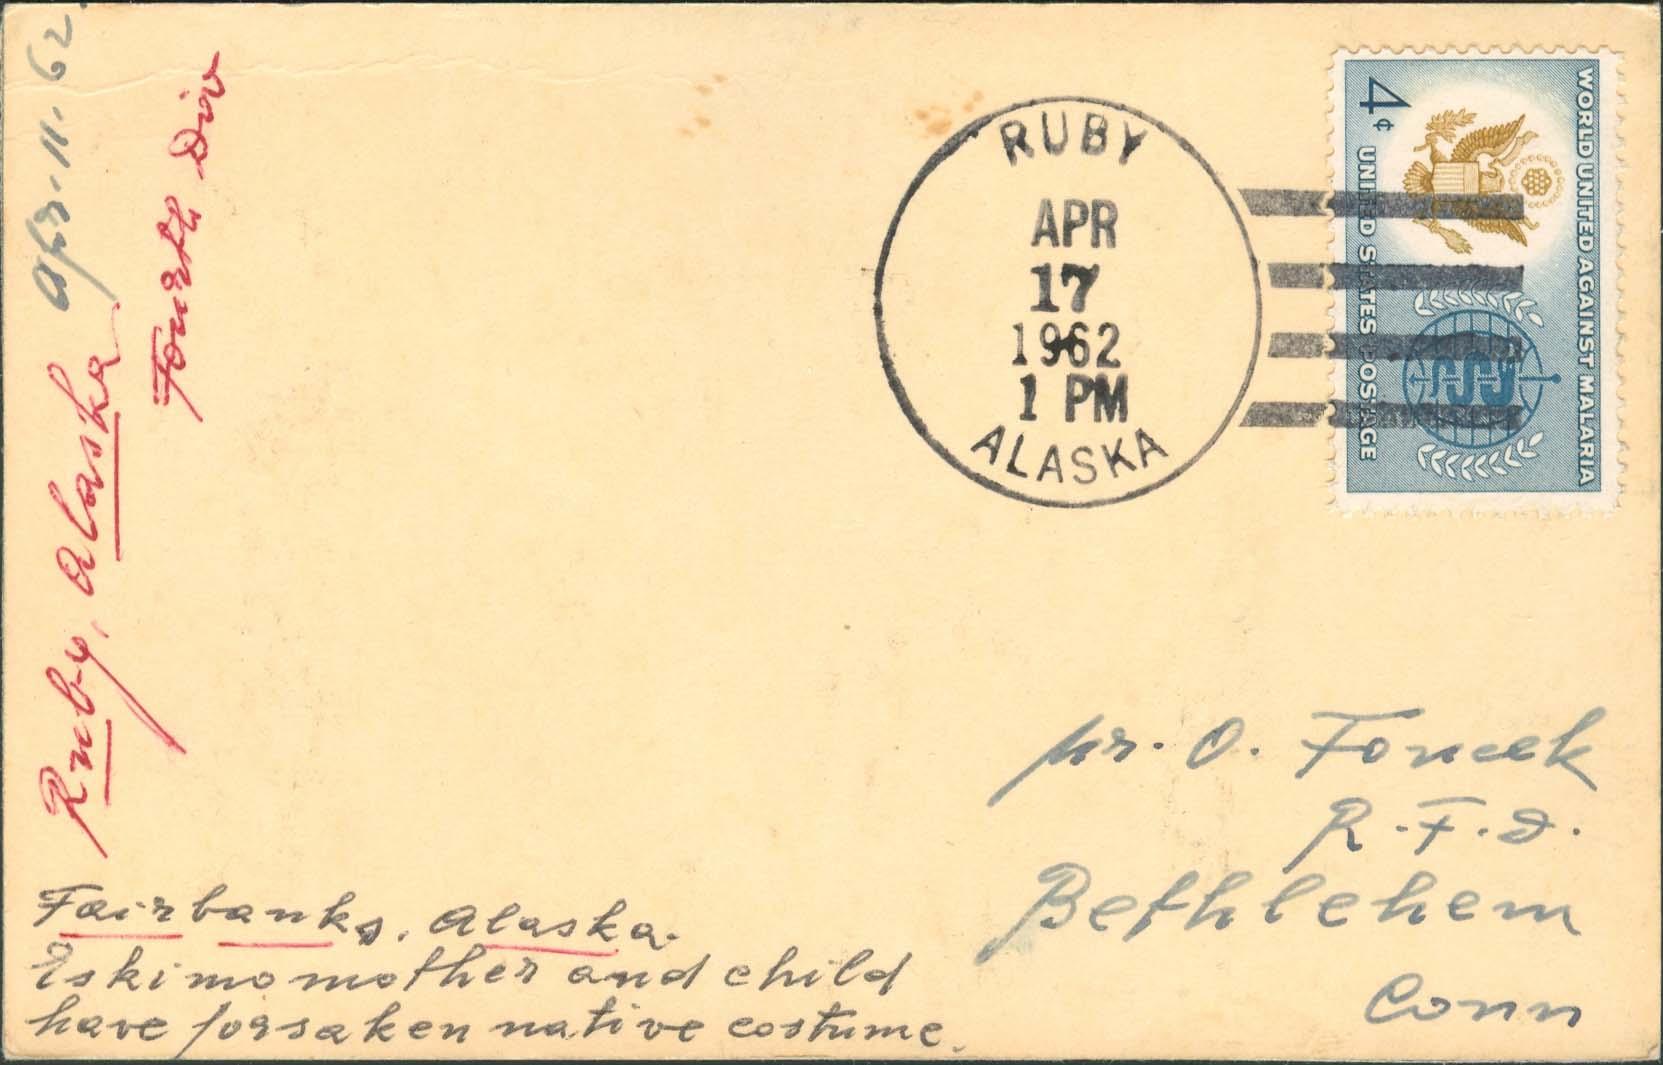 1962, April 17th, 1:00 PM. Ruby, AK to Bethlehem, CN (Overpaid by 1¢)